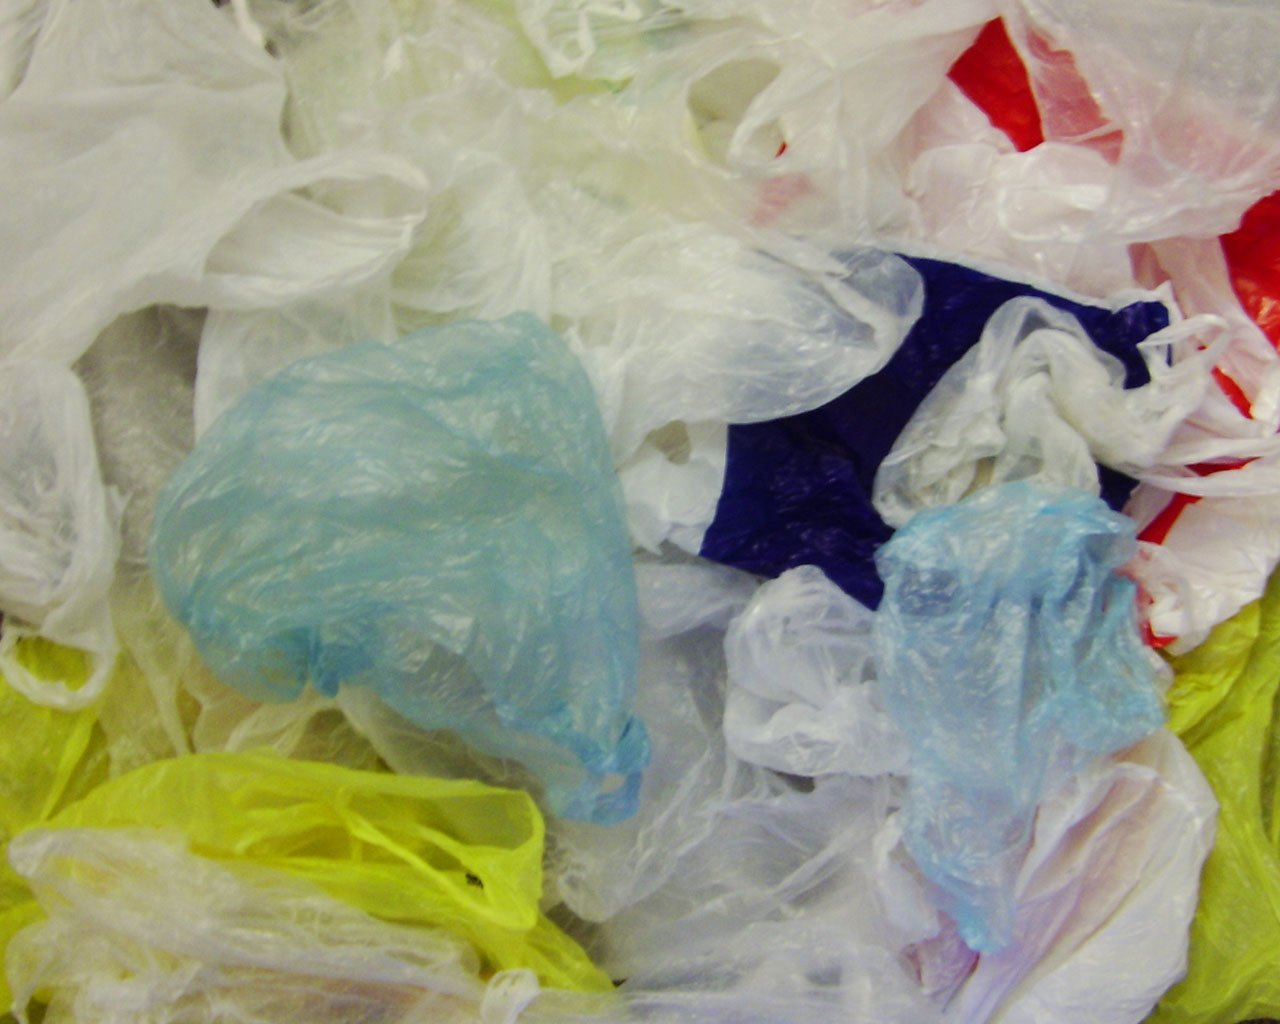 Typical plastic bags